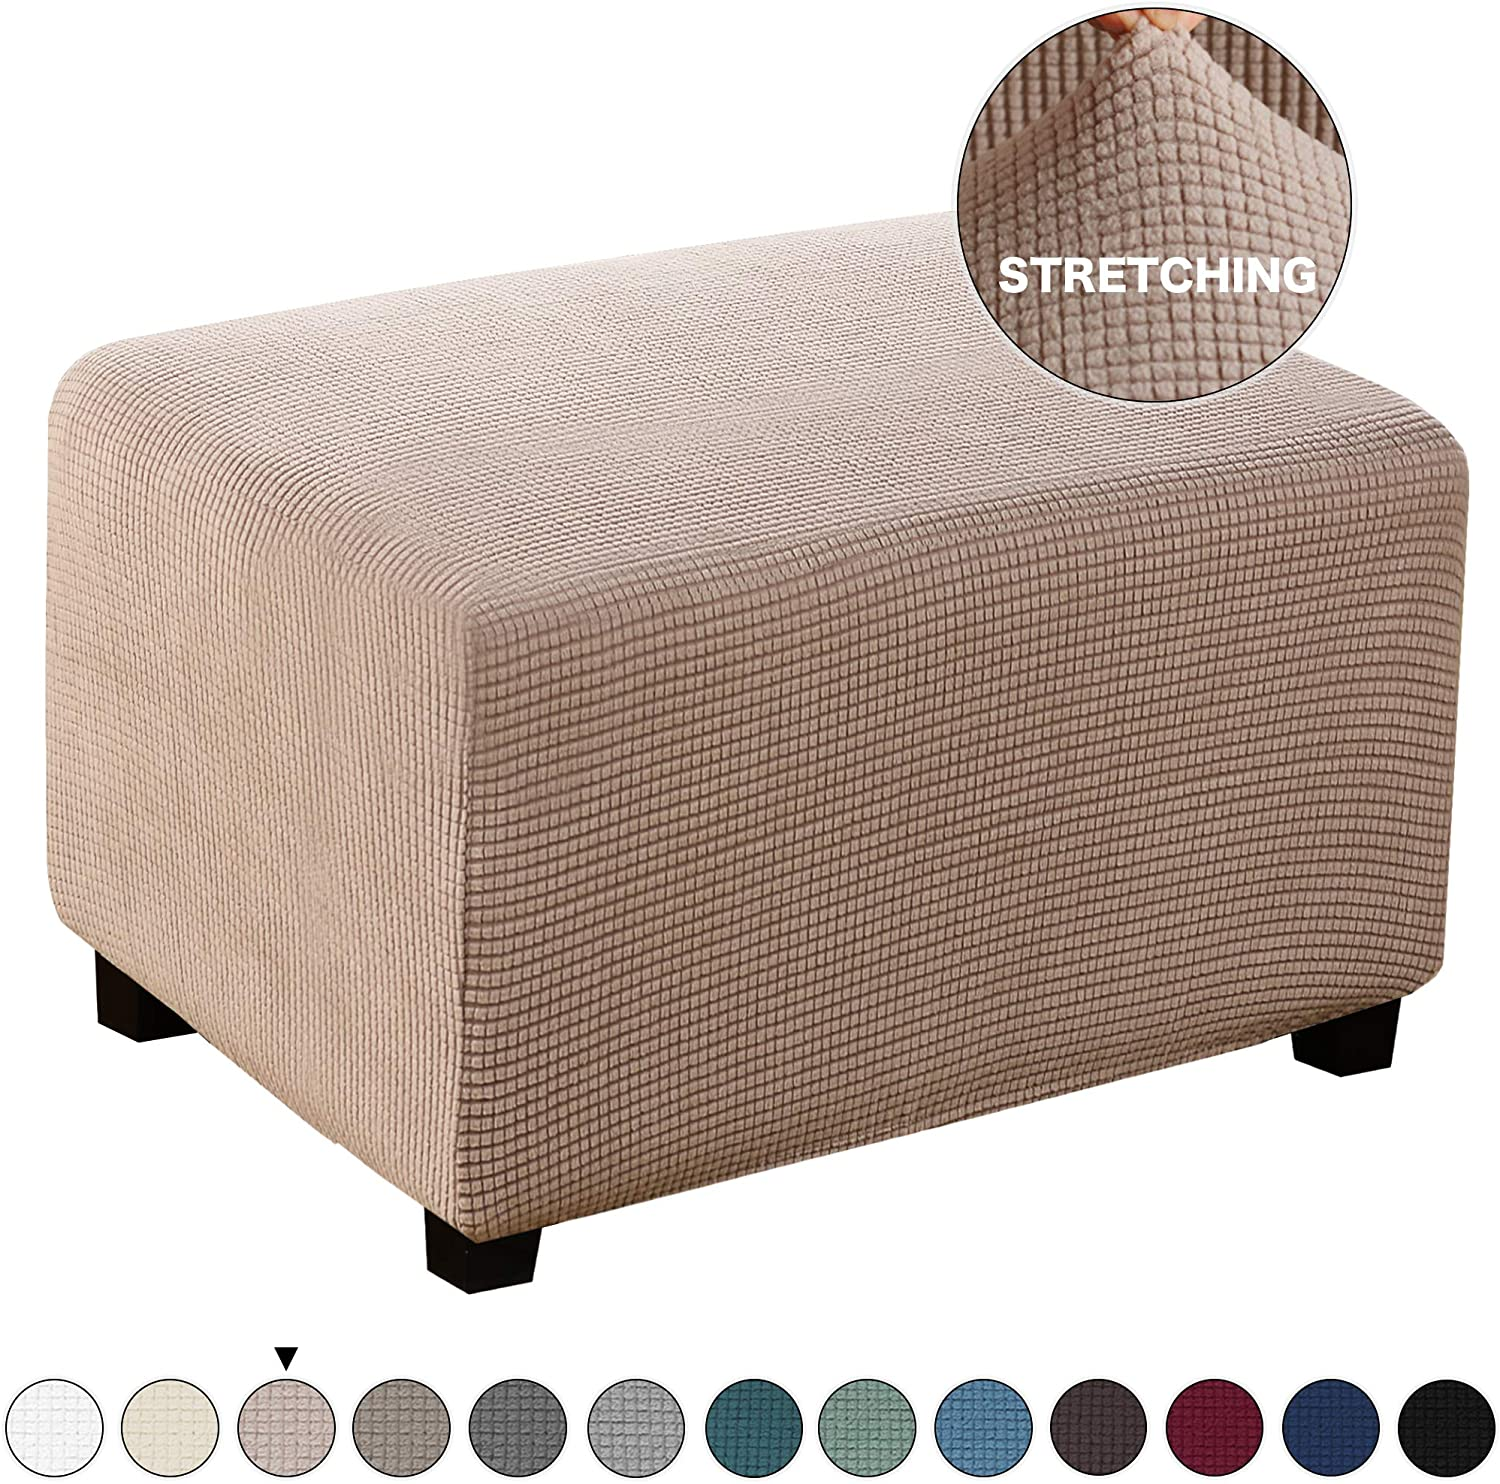 Turquoize Jacquard Ottoman Cover Oversize Easy Fitted Storage Stool Ottoman Covers Slipcovers, High Elasticity Furniture Protector for Living Room Footrest Furniture Protector (X-Large, Khaki)